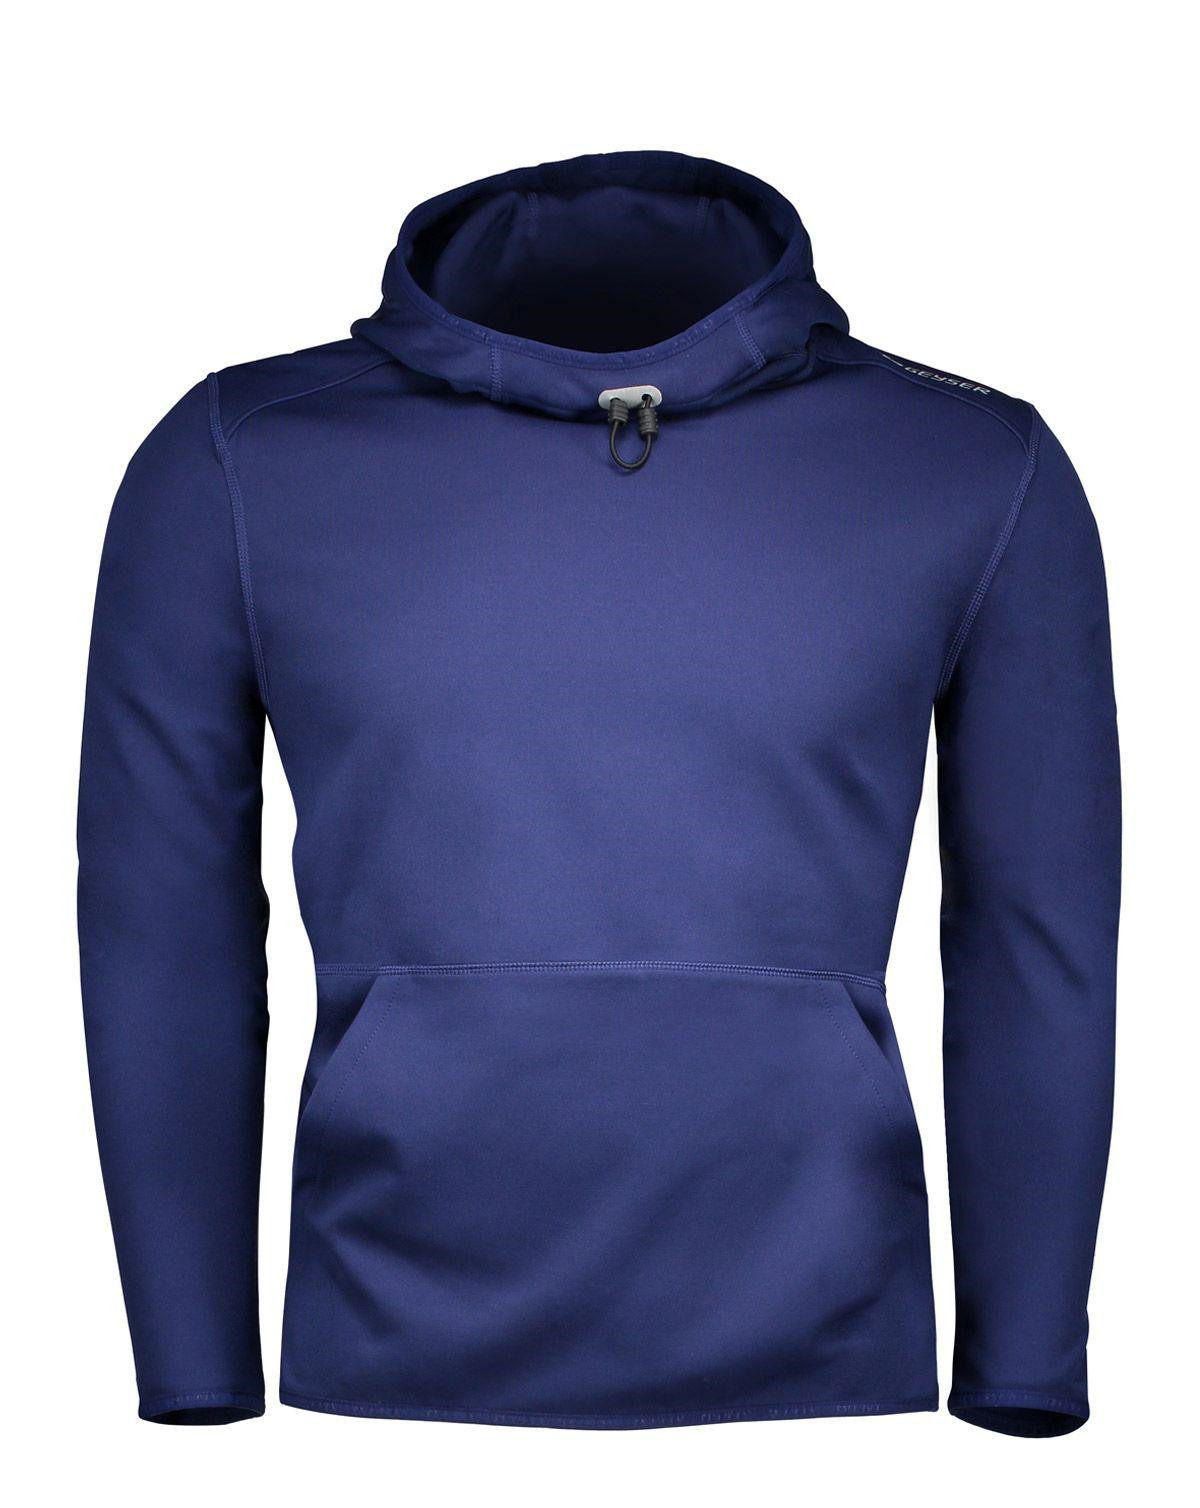 Image of   GEYSER Urban Hættetrøje (Navy, 2XL)